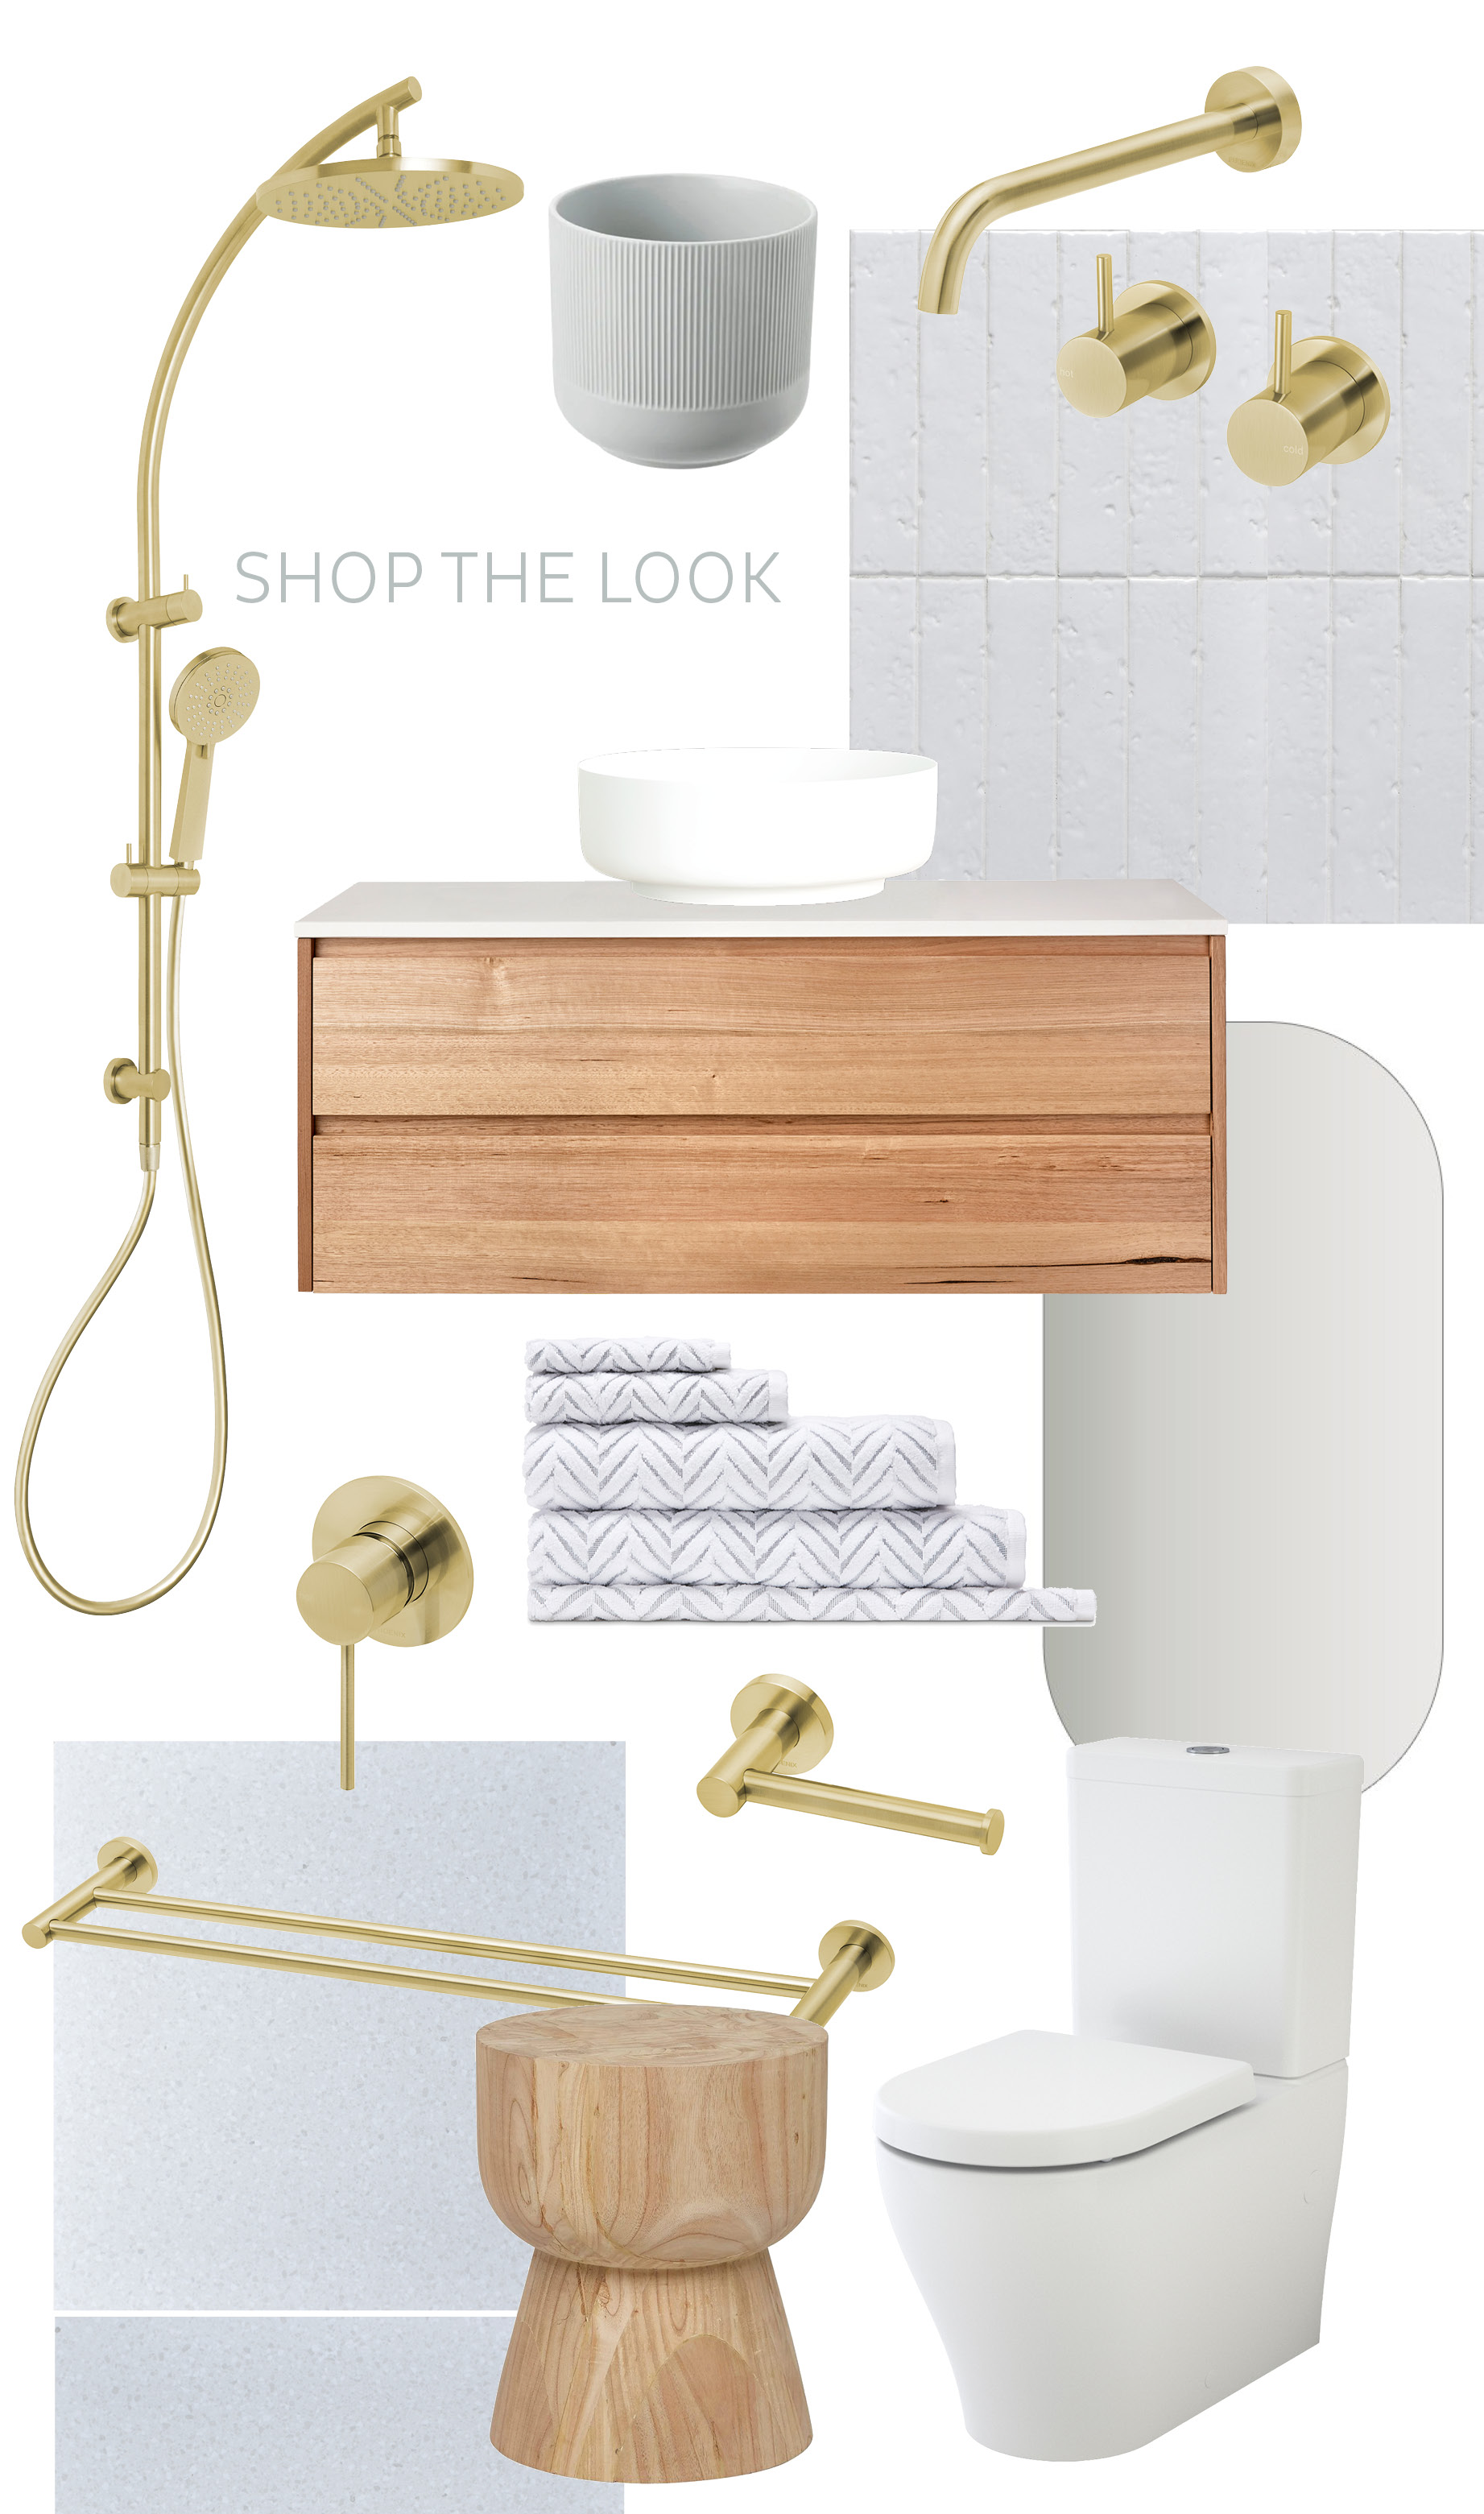 adore_home_editor_loni_parker_my_bathroom_renovation_shop_the_look.jpg